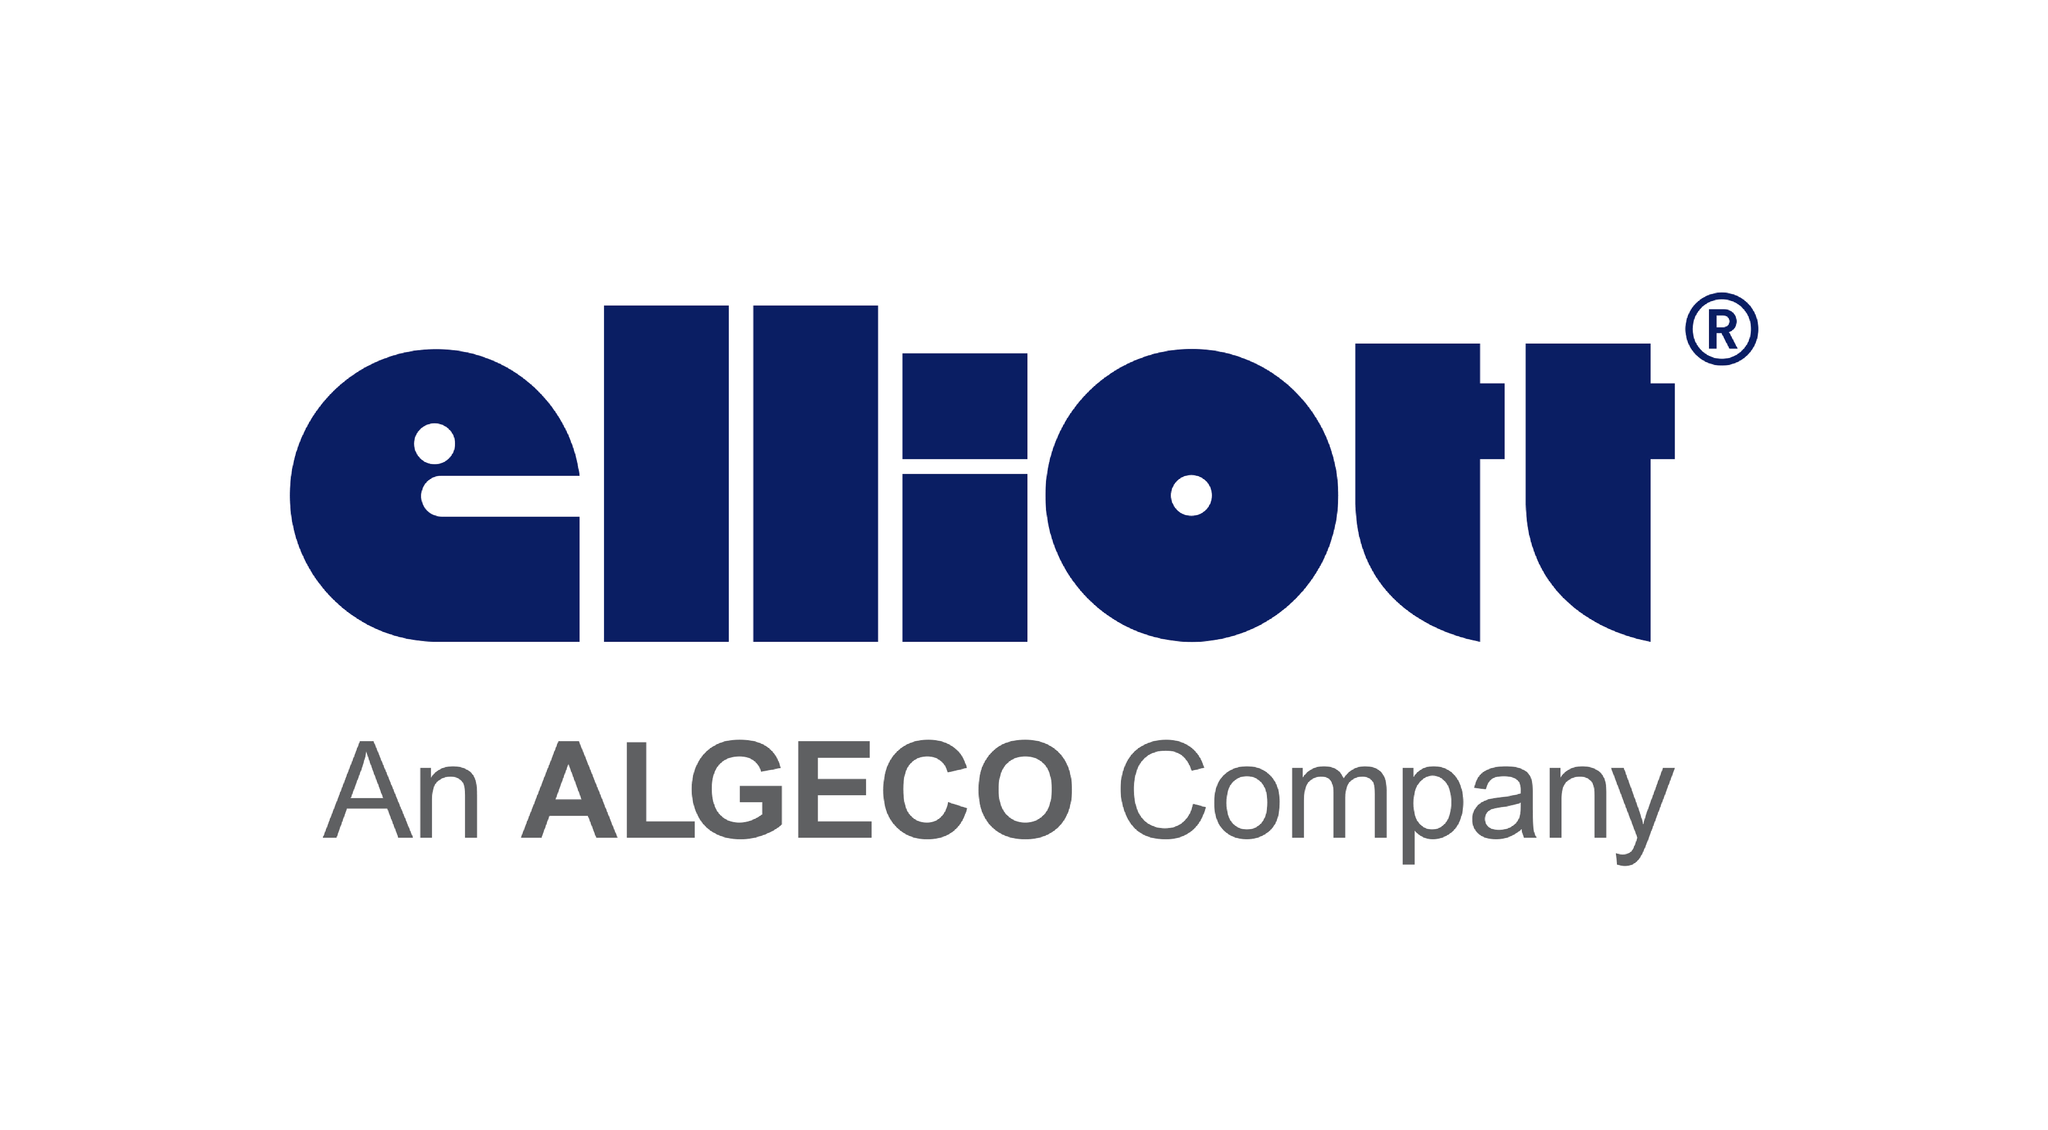 Elliott Group Limited